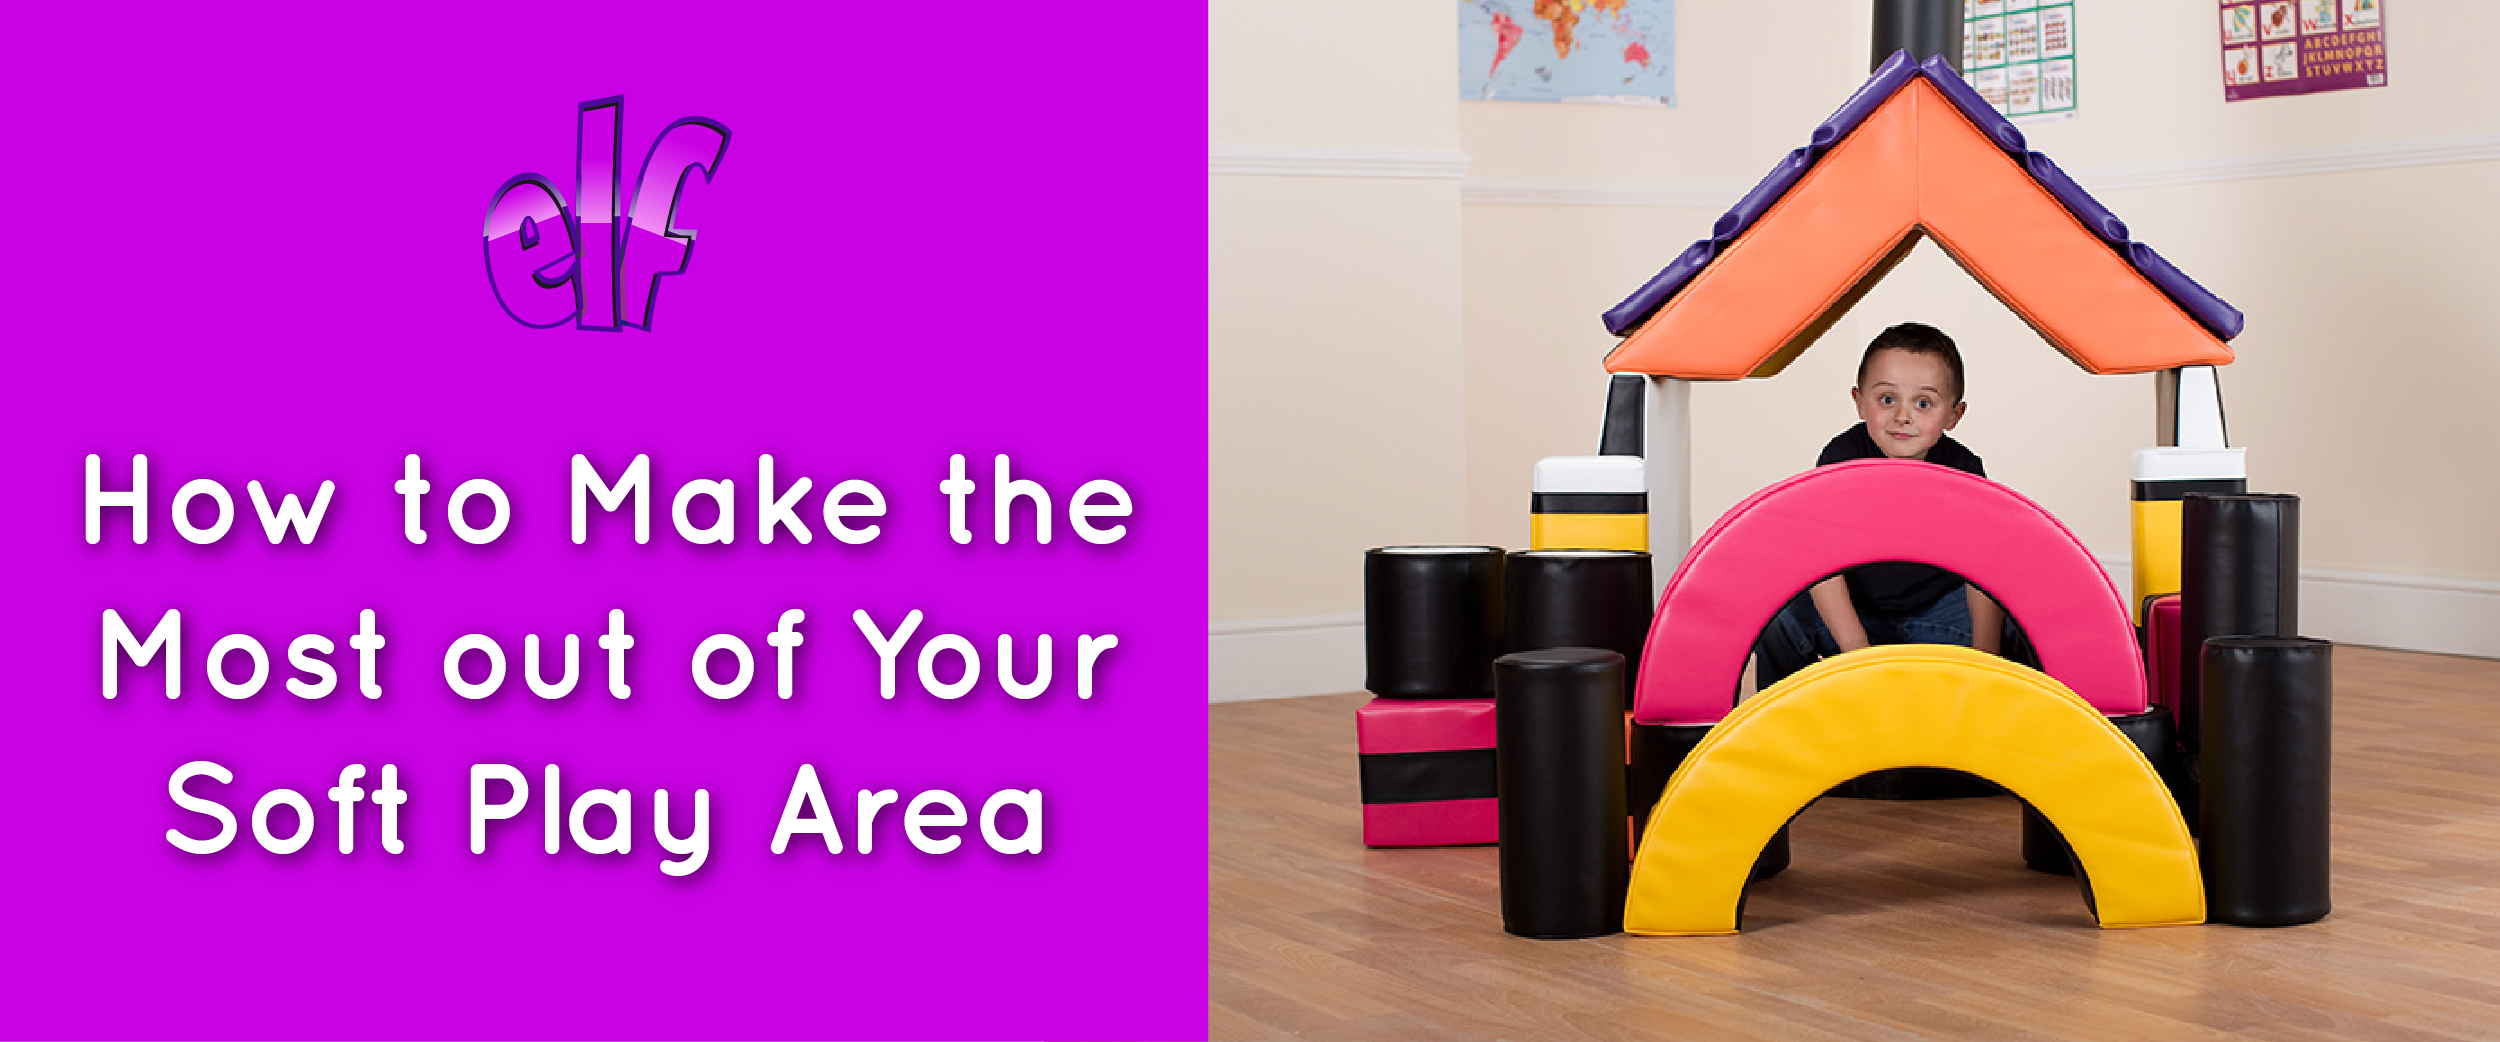 How to Make the Most out of Your Soft Play Area